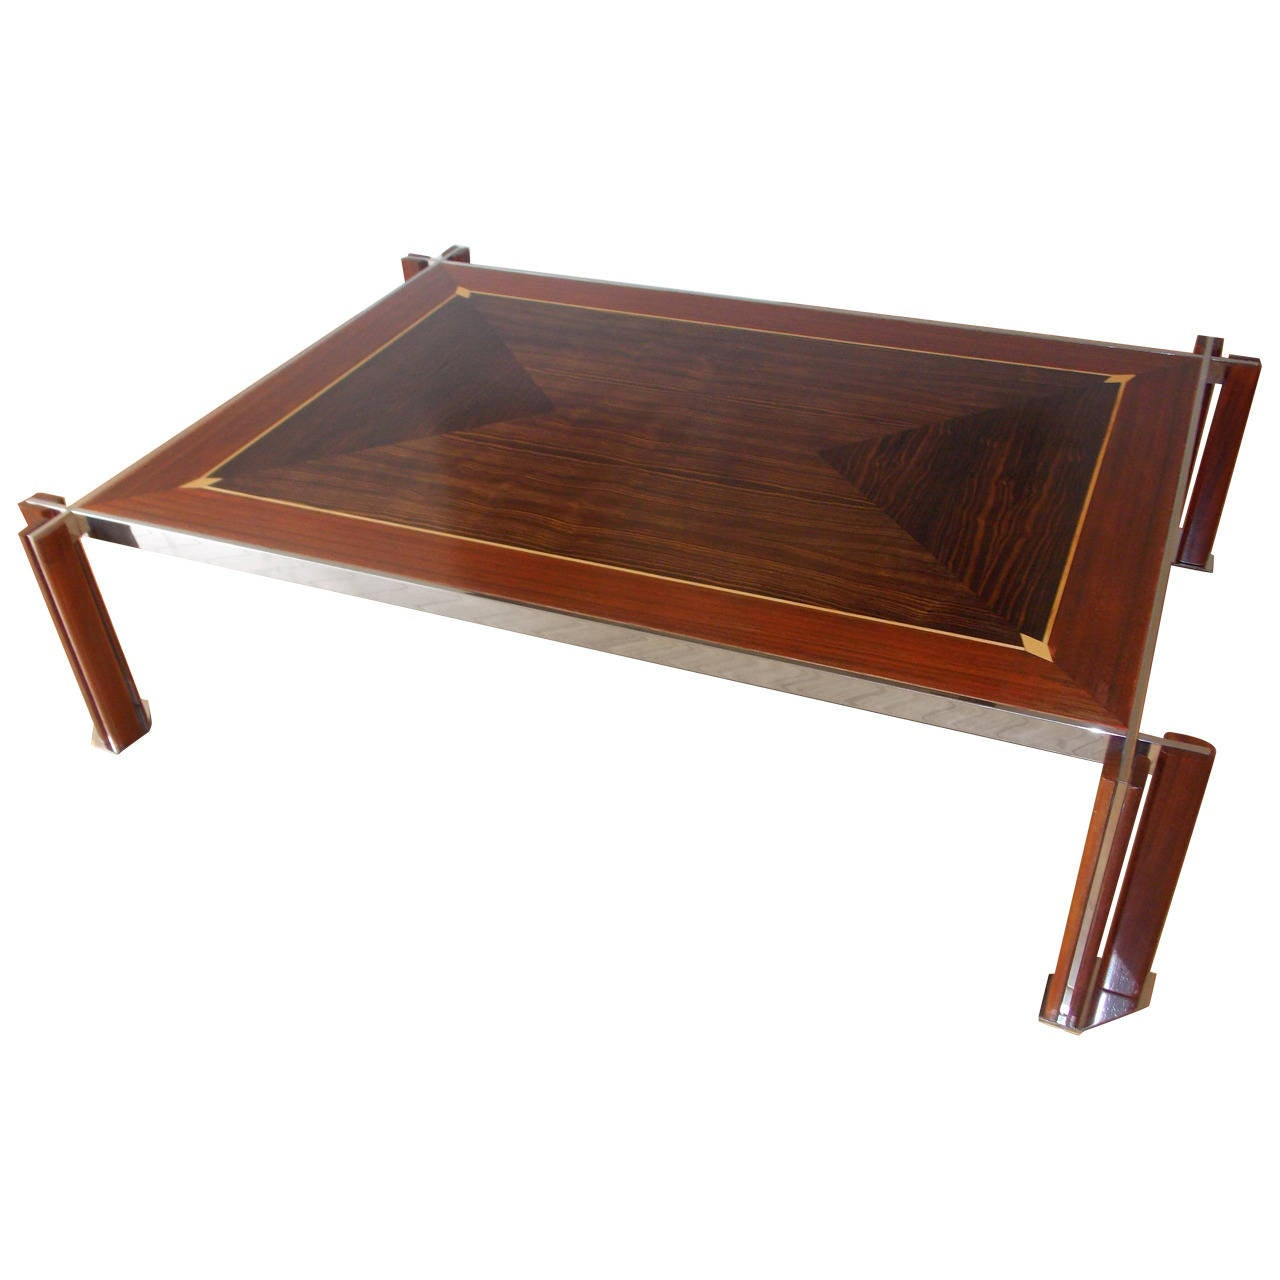 chic italian design coffee table attributed to saporitti